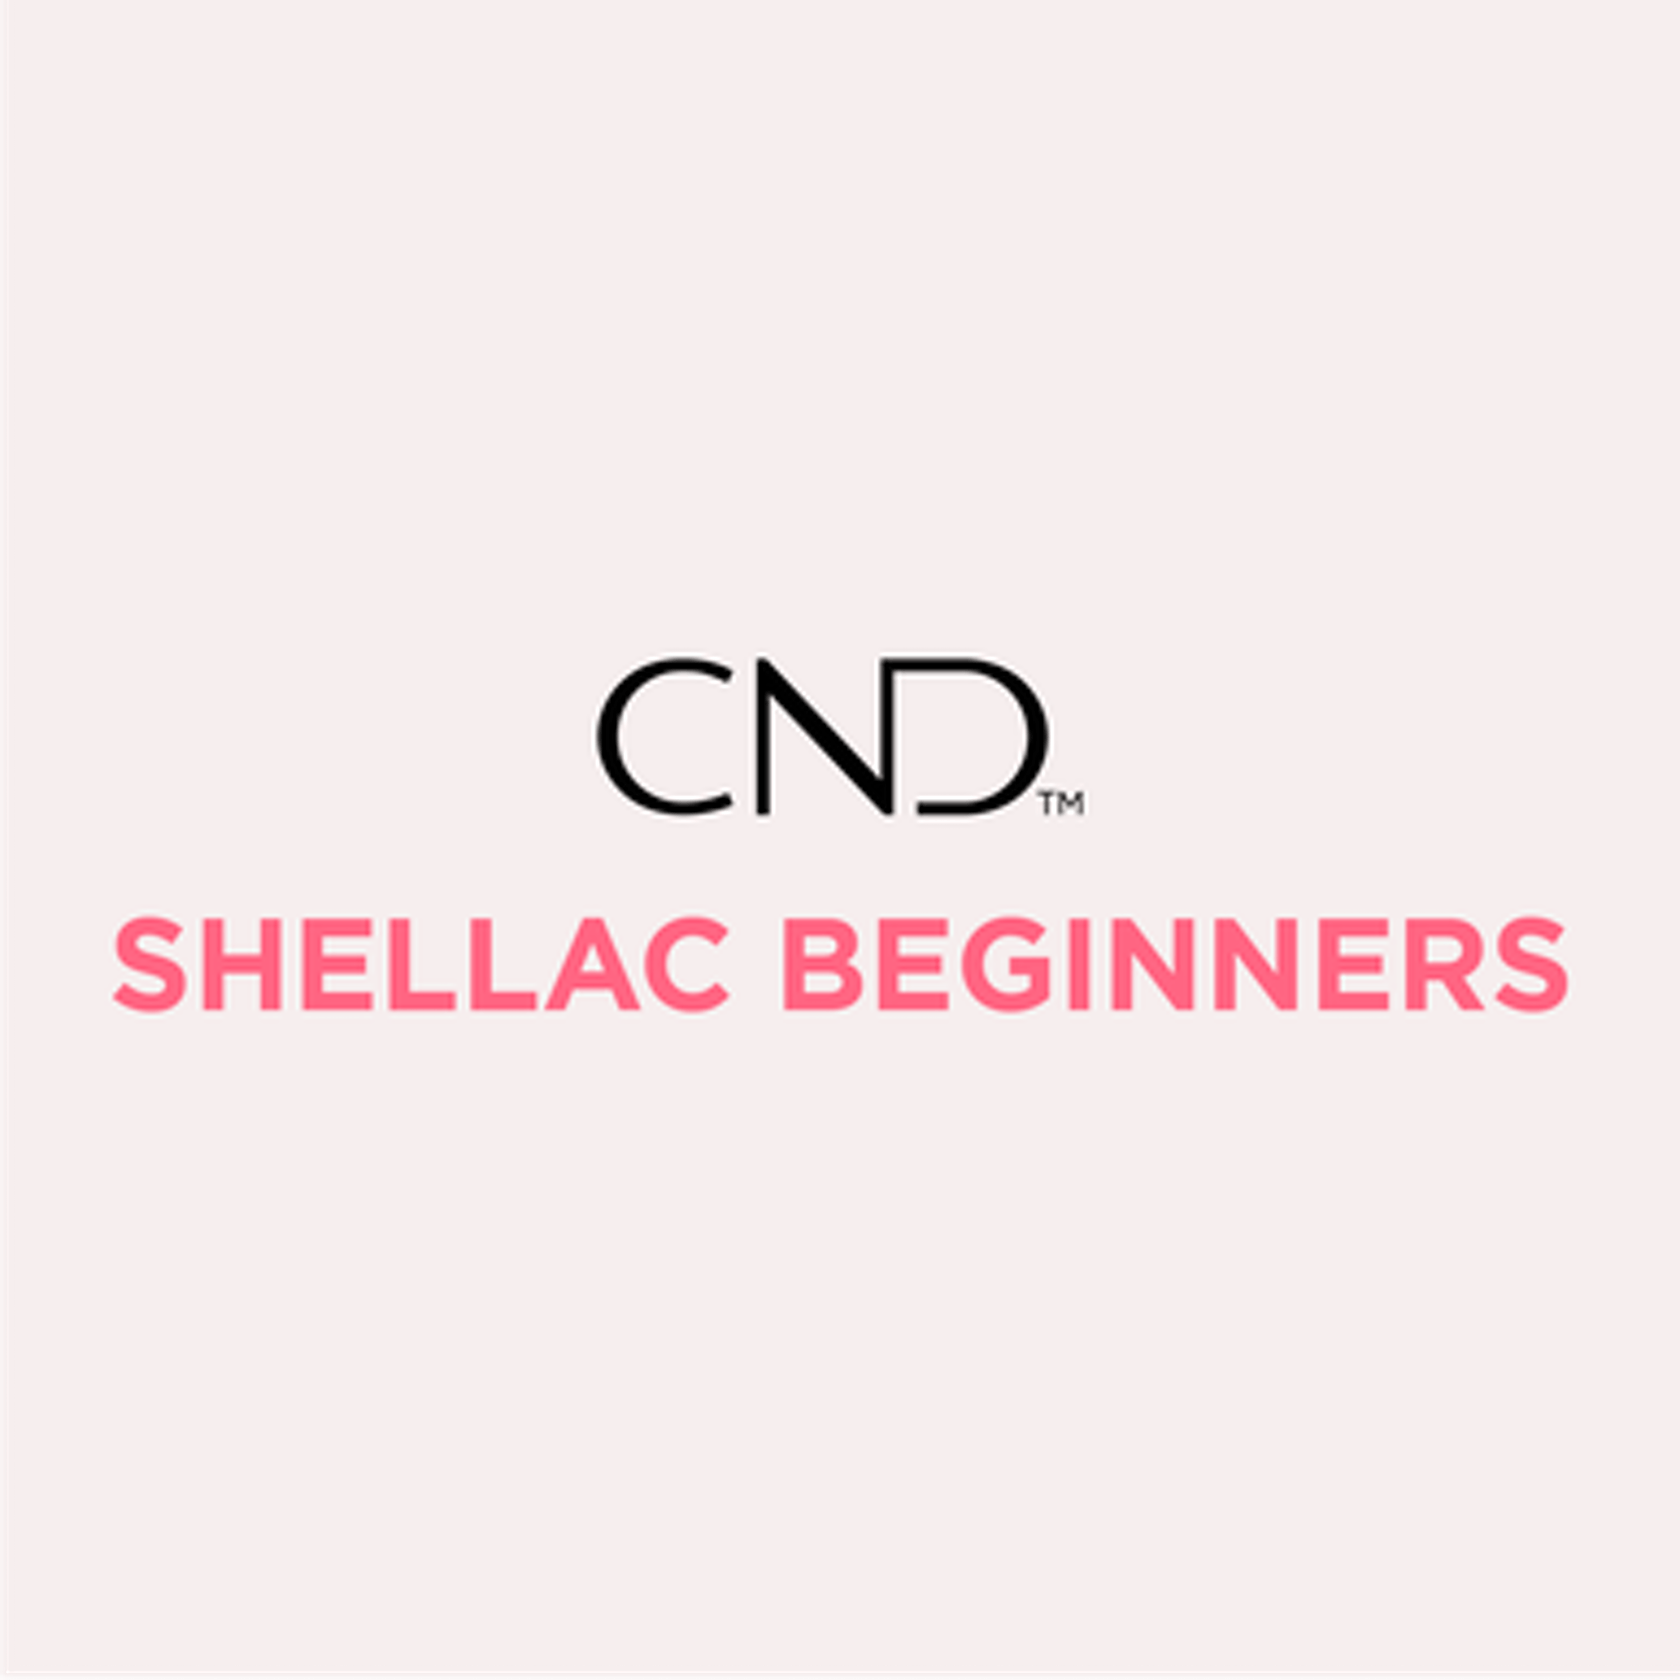 CND Shellac Beginners - New In